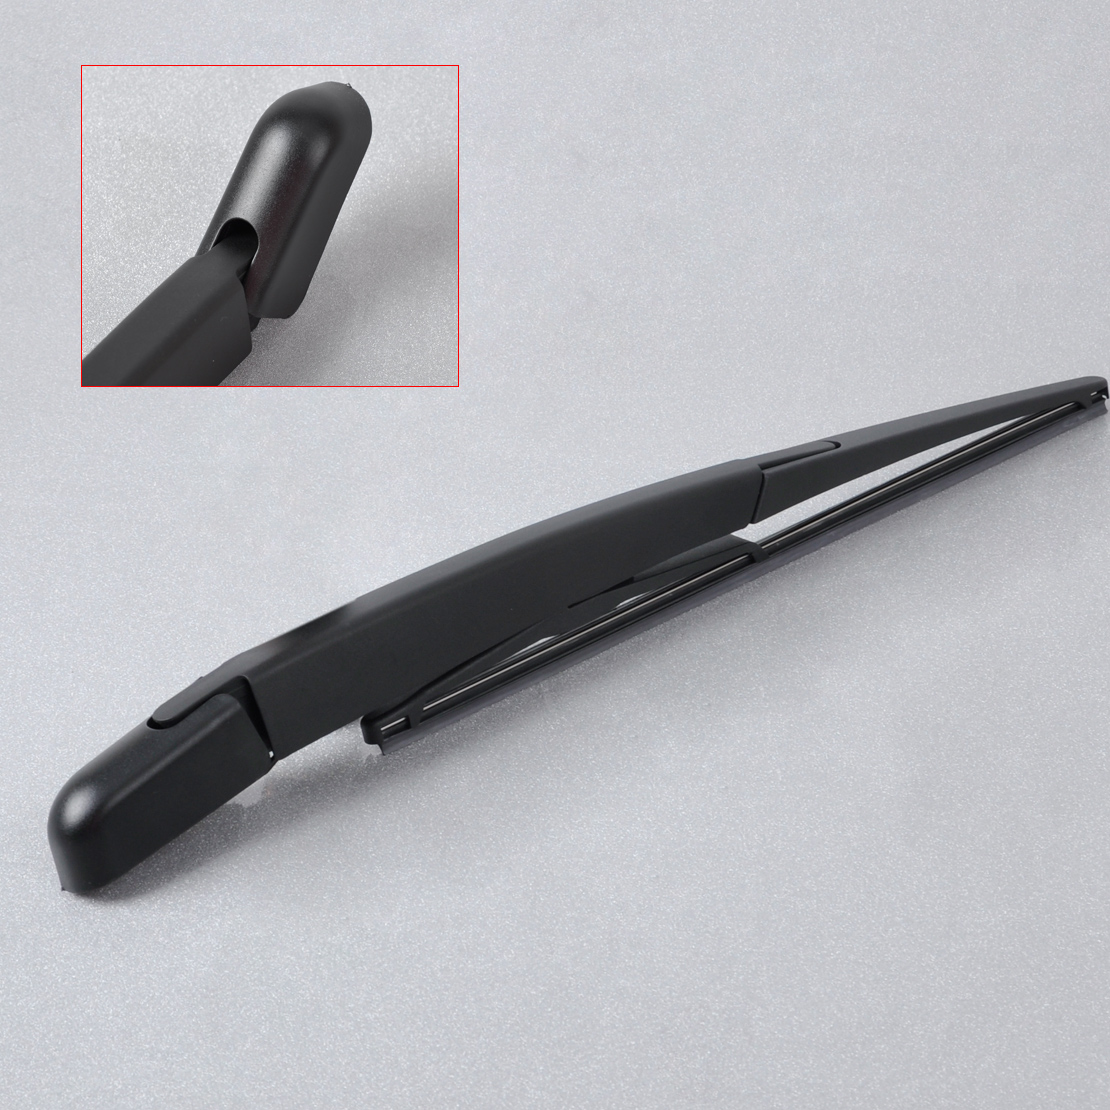 CITALL Car Rear Window Windshield Wiper Arm Wiper Blade For Nissan Qashqai 2008 2009 2010 2011 2012 2013 in Windscreen Wipers from Automobiles Motorcycles